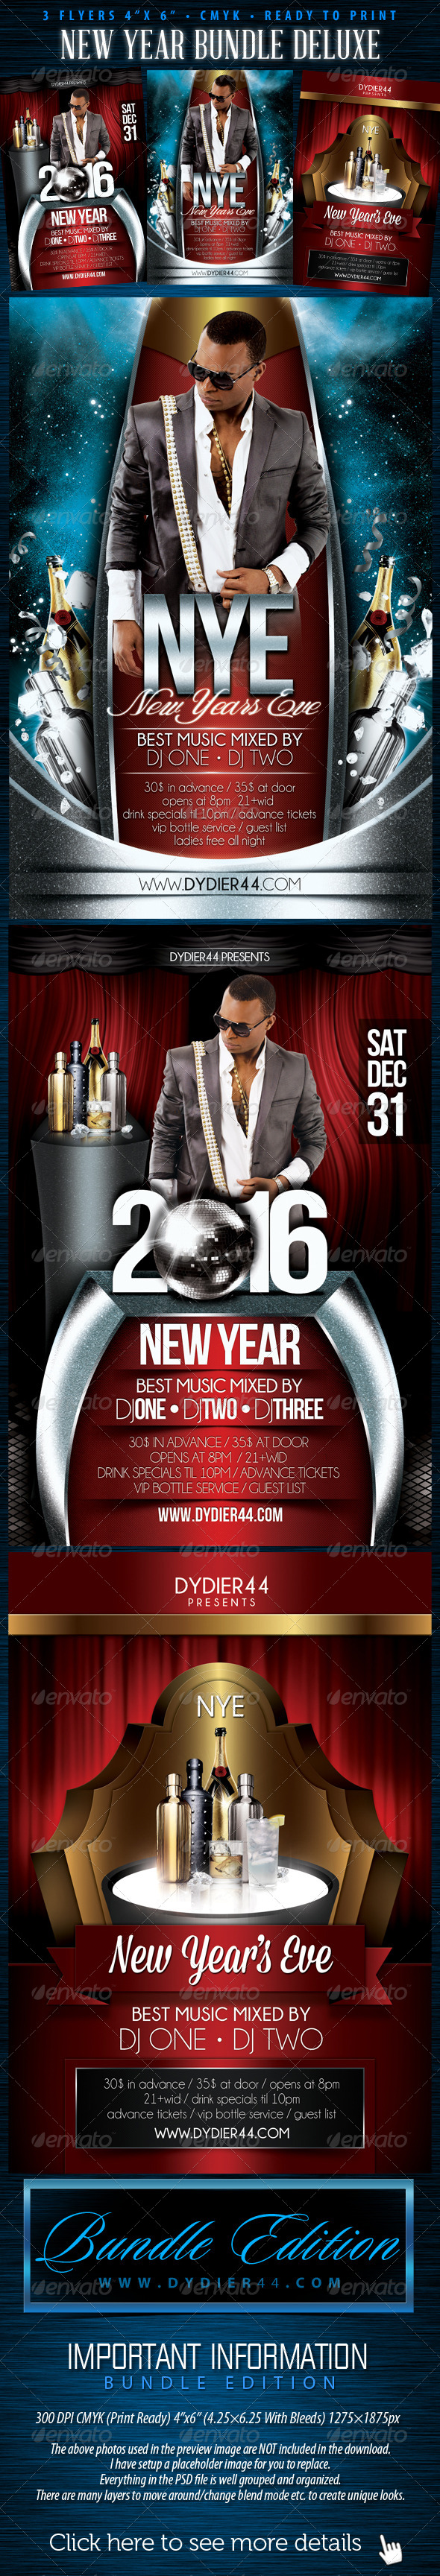 New Years Bundle Deluxe Flyer Template 4x6 By Dydier44 Graphicriver